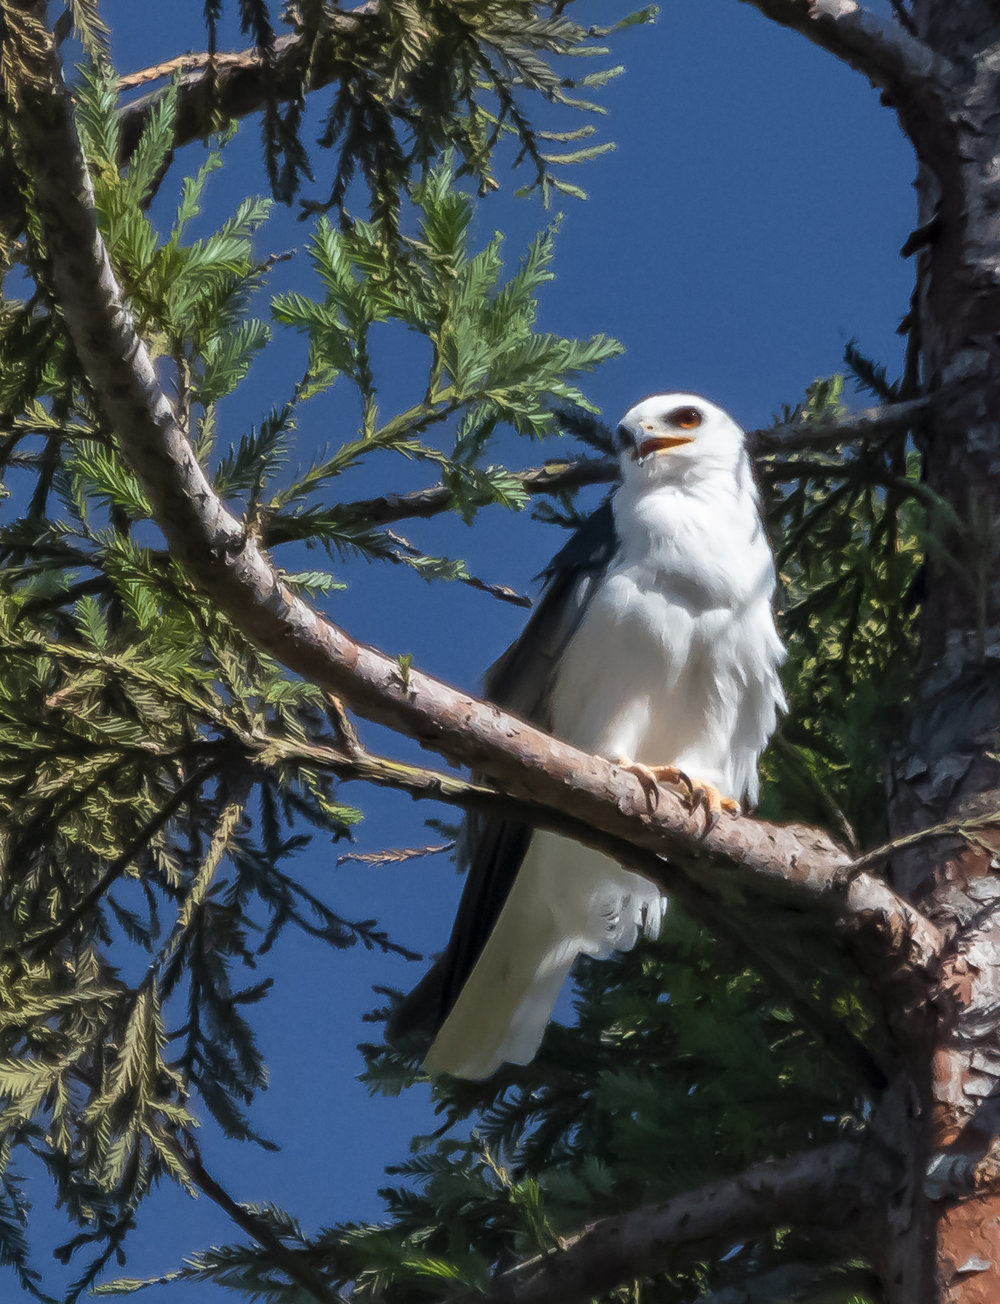 White-tailed Kite in San Jose, California